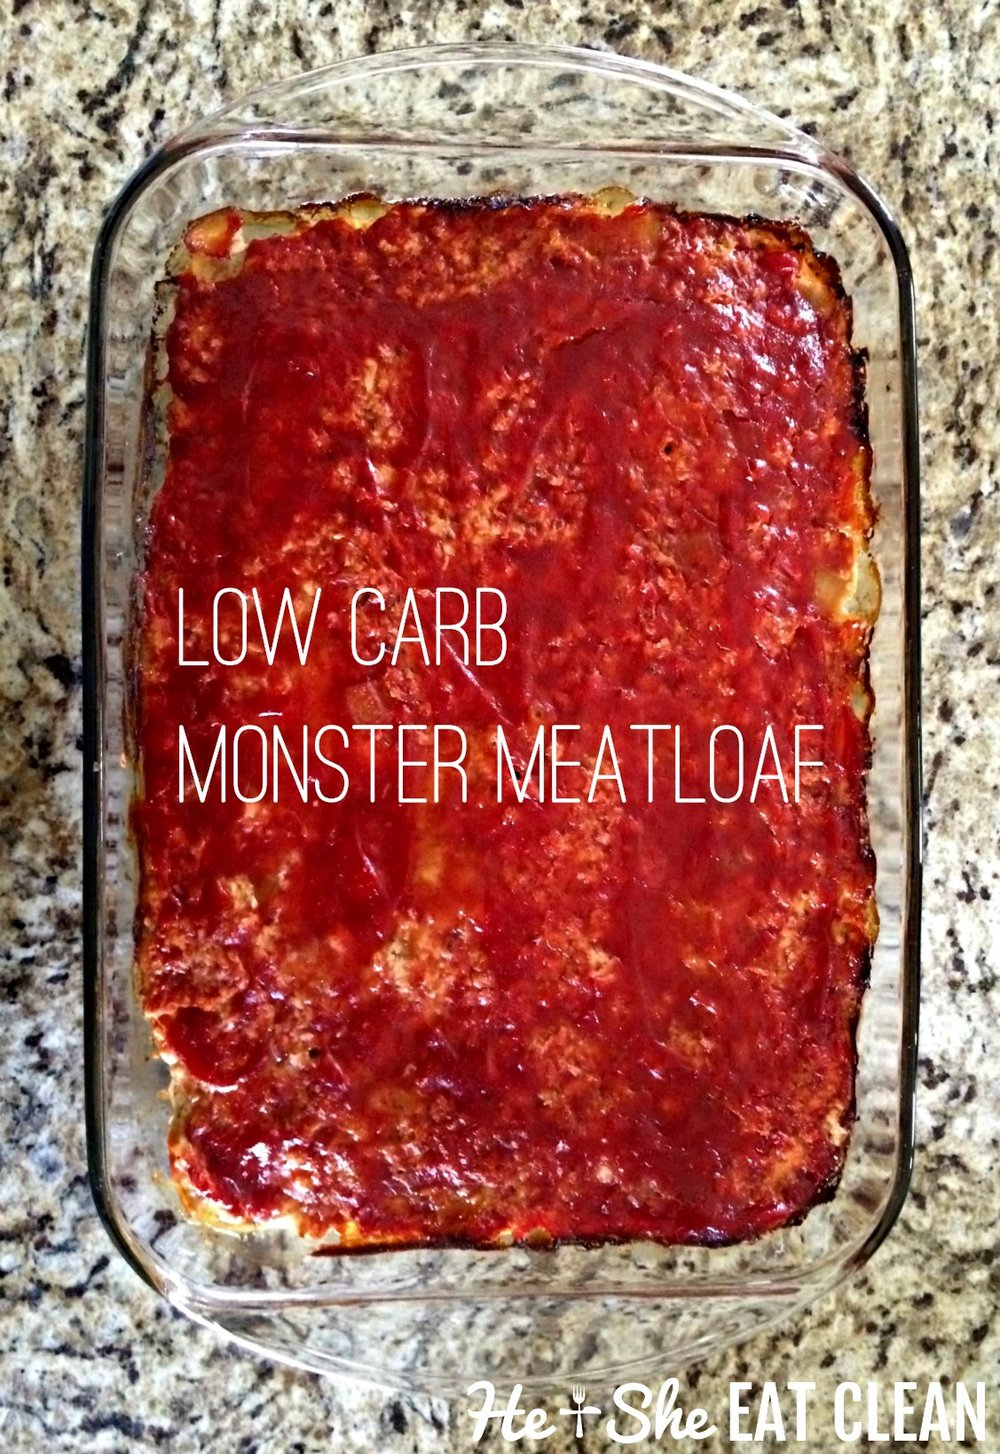 Low Carb Monster Meatloaf